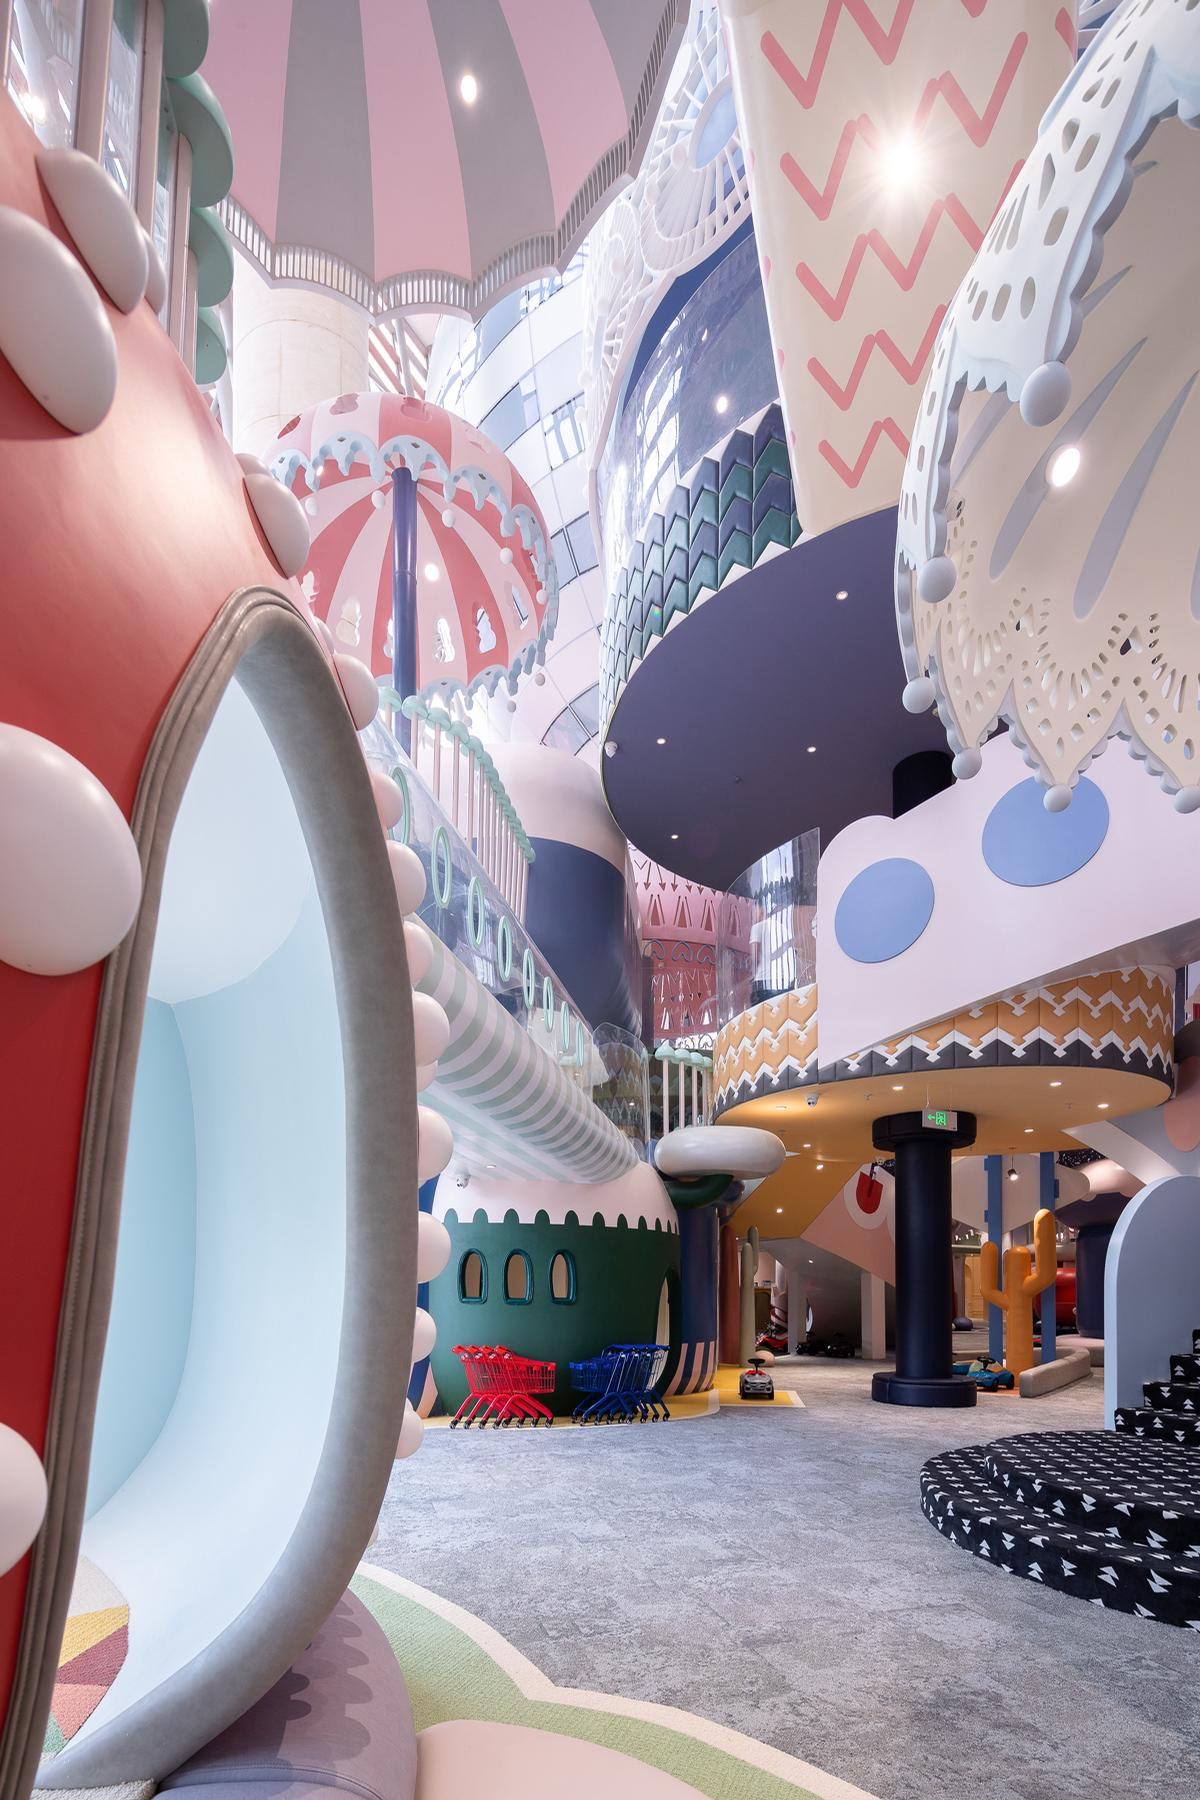 The centre combines a mix of slides, ball-pits and hidden spaces with fantastical design elements and a pastels aesthetic / Shao Feng